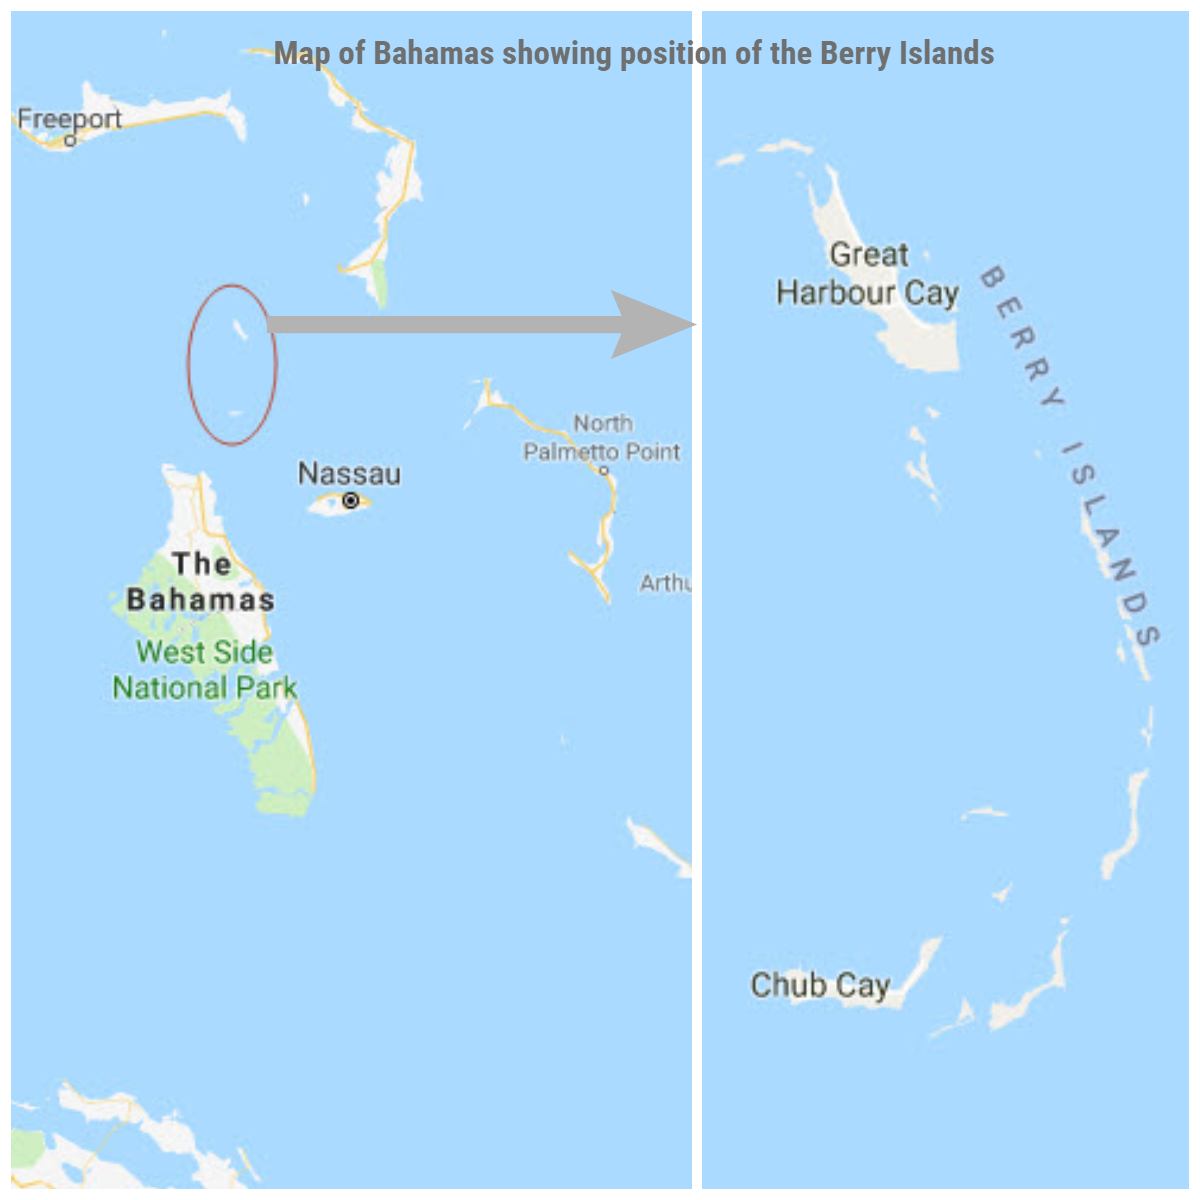 a few days ago we anchored off little harbor cay about half way between great harbor cay and chub cay we had gone exploring on our dinghy and found a